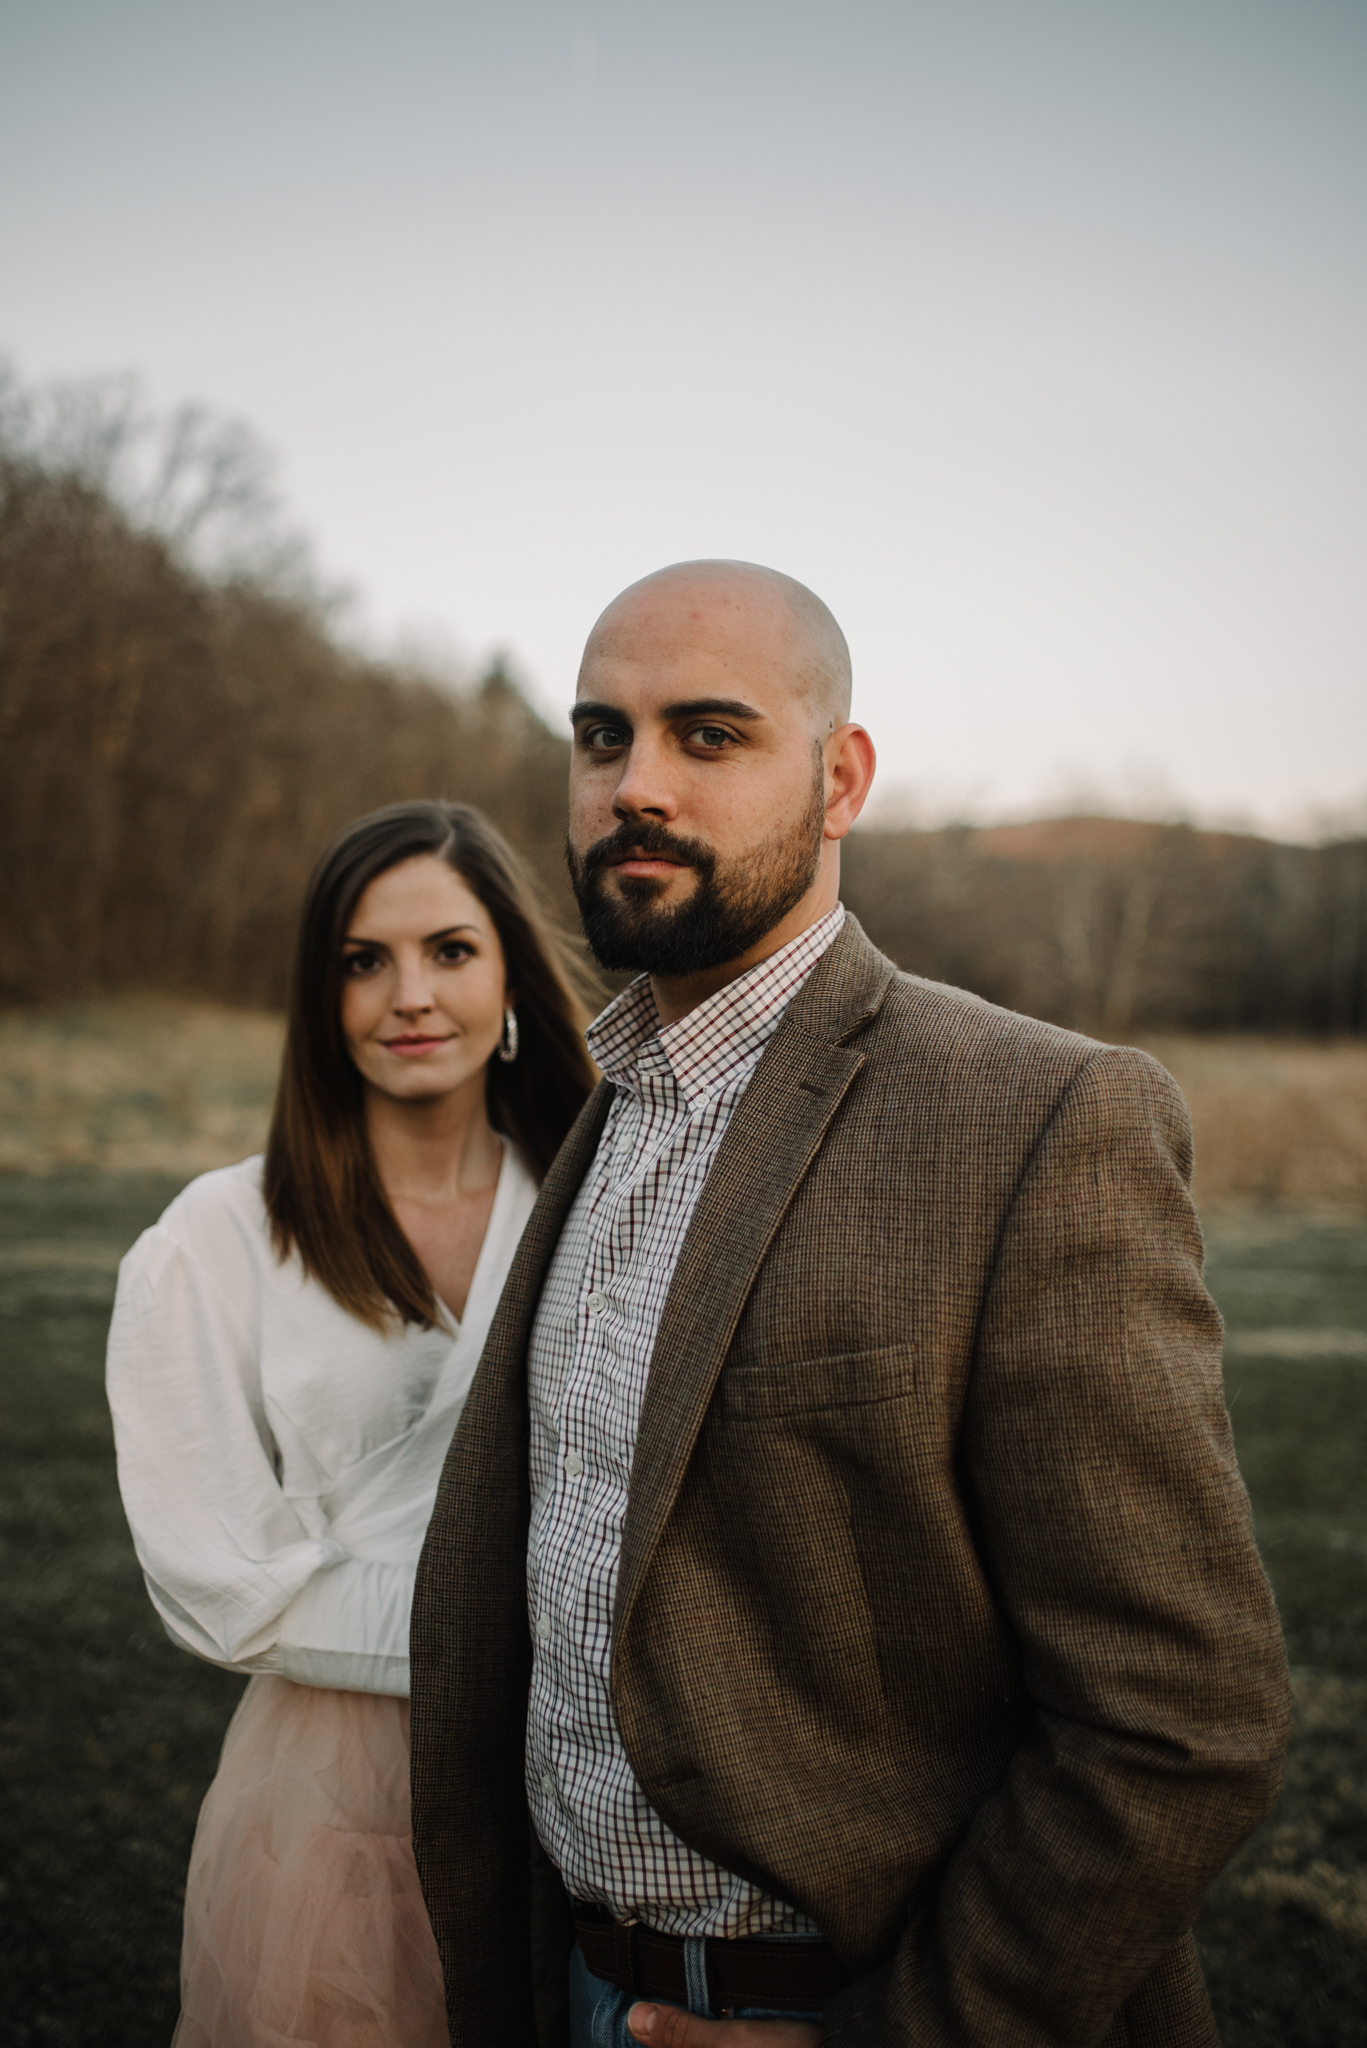 Emily and Hoyle - Shenandoah Valley Engagement Session - Winter Sunset - Downtown Old Movie Theater - Back yard Virginia Farm Wedding_38.JPG